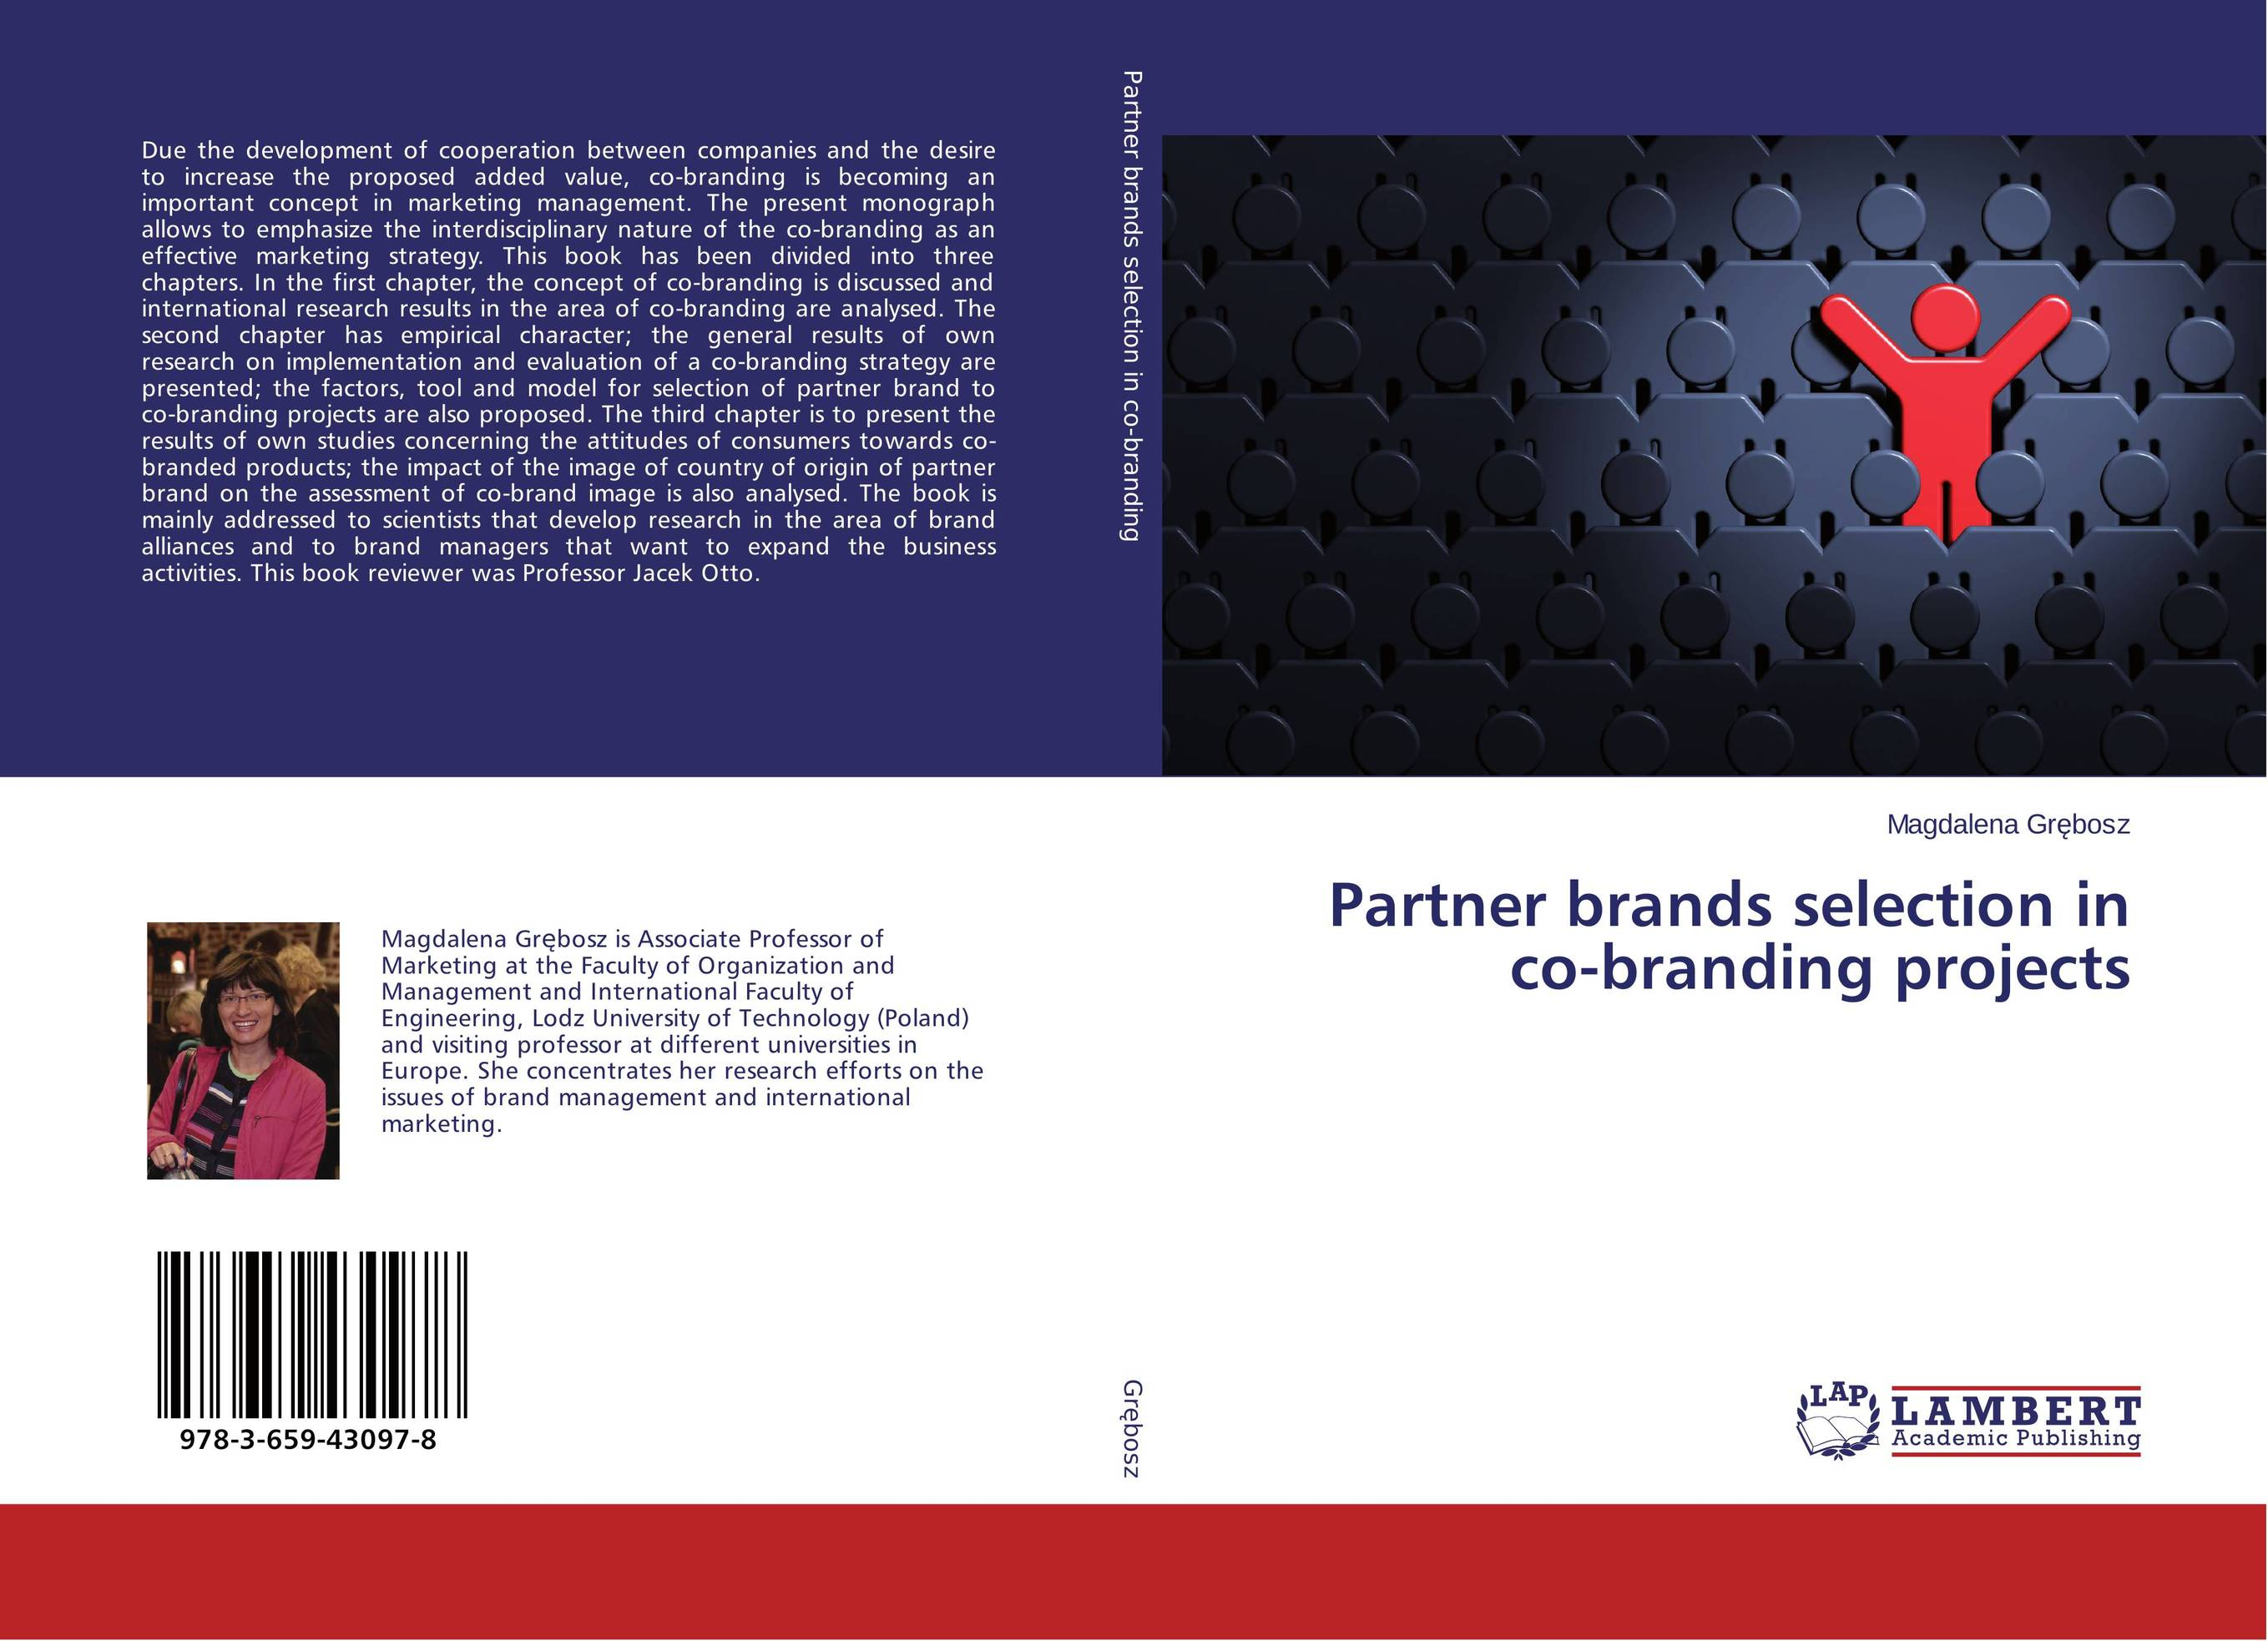 Partner brands selection in co-branding projects